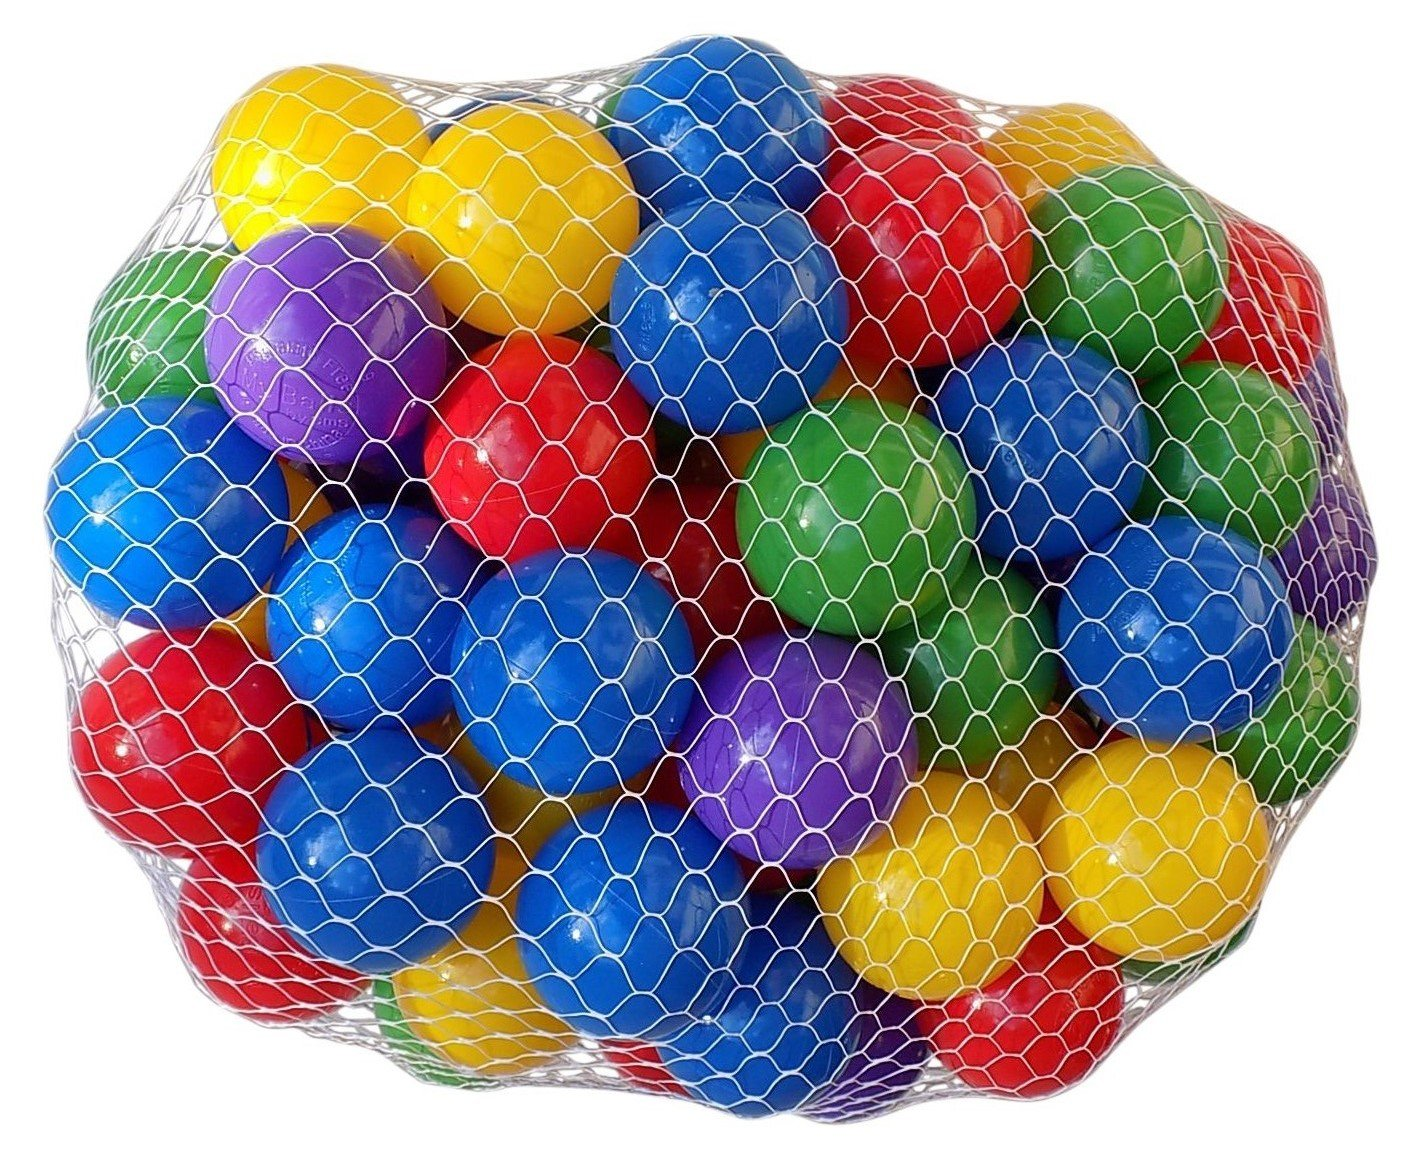 My Balls by CMS Pack of 200 pcs Phthalate Free, BPA Free 2.5'' Plastic Ball Pit Balls in 5 Bright Colors